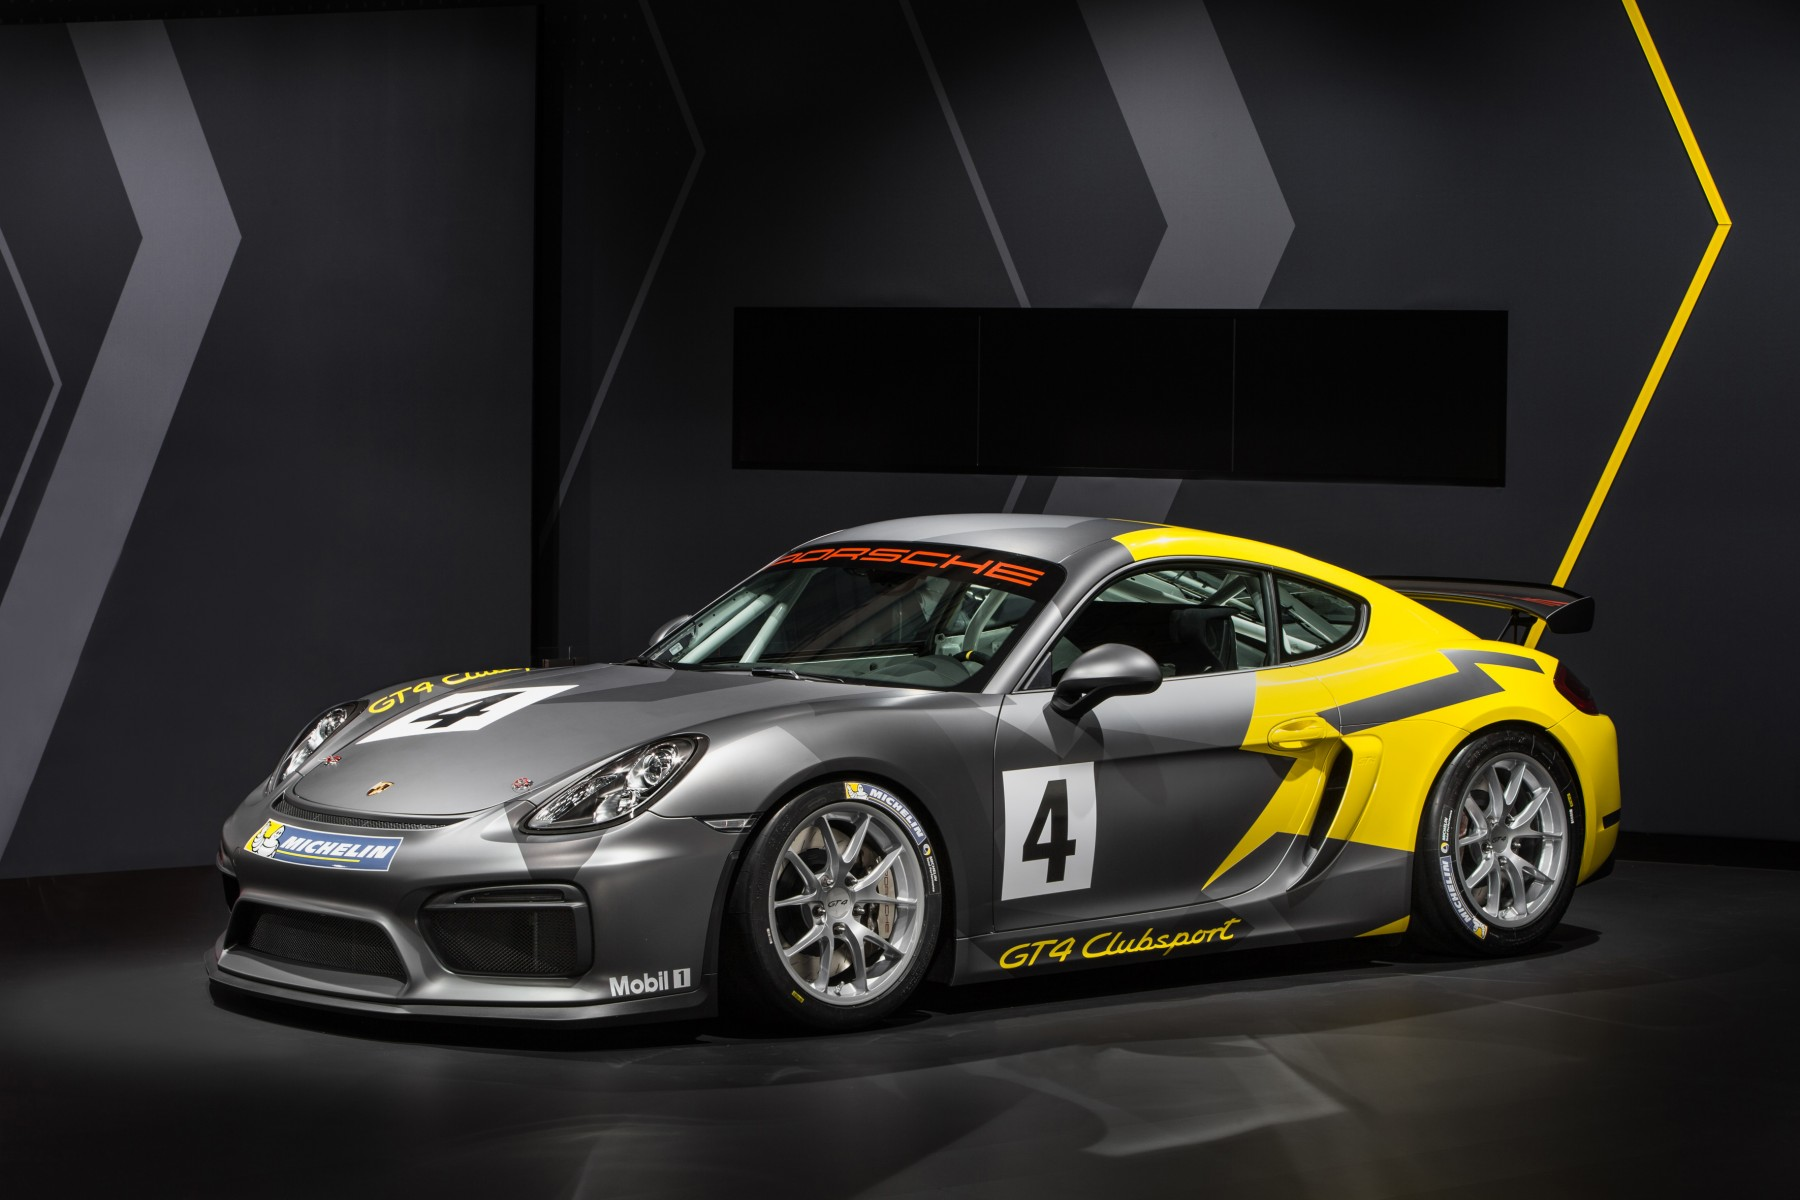 high_cayman_gt4_clubsport_2015_porsche_ag_9.jpg